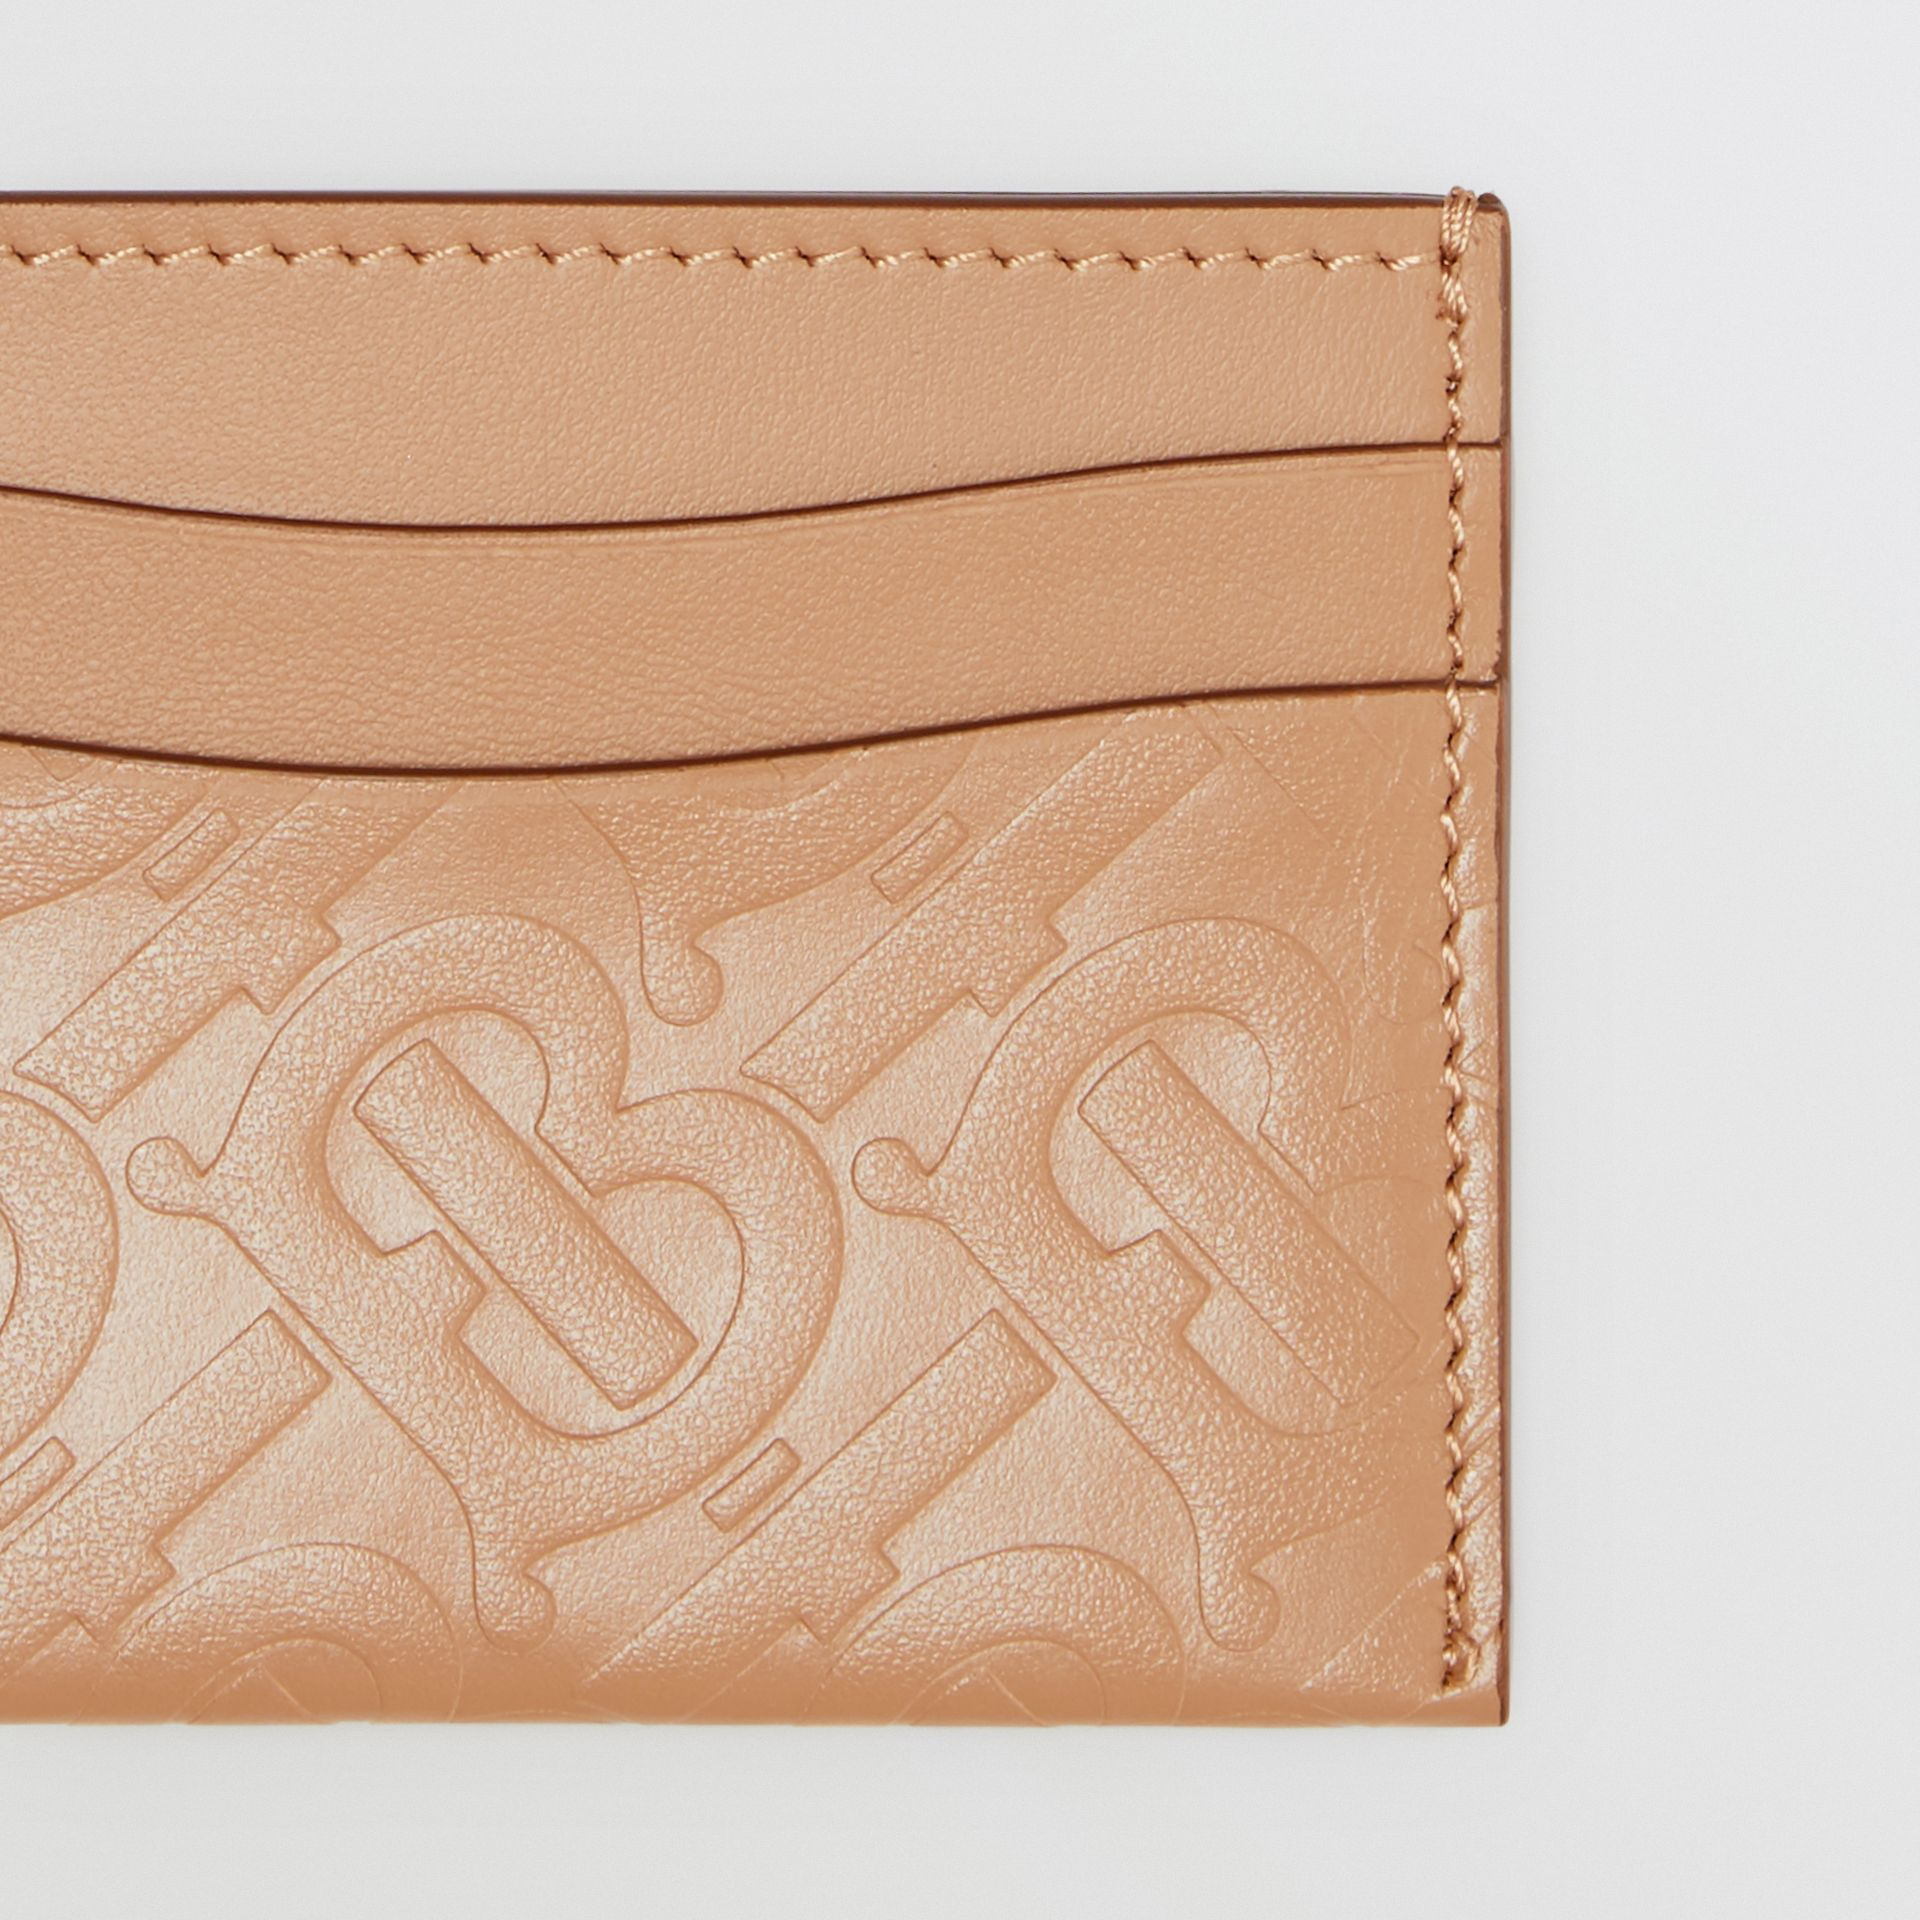 Monogram Leather Card Case in Light Camel - Women | Burberry - gallery image 1